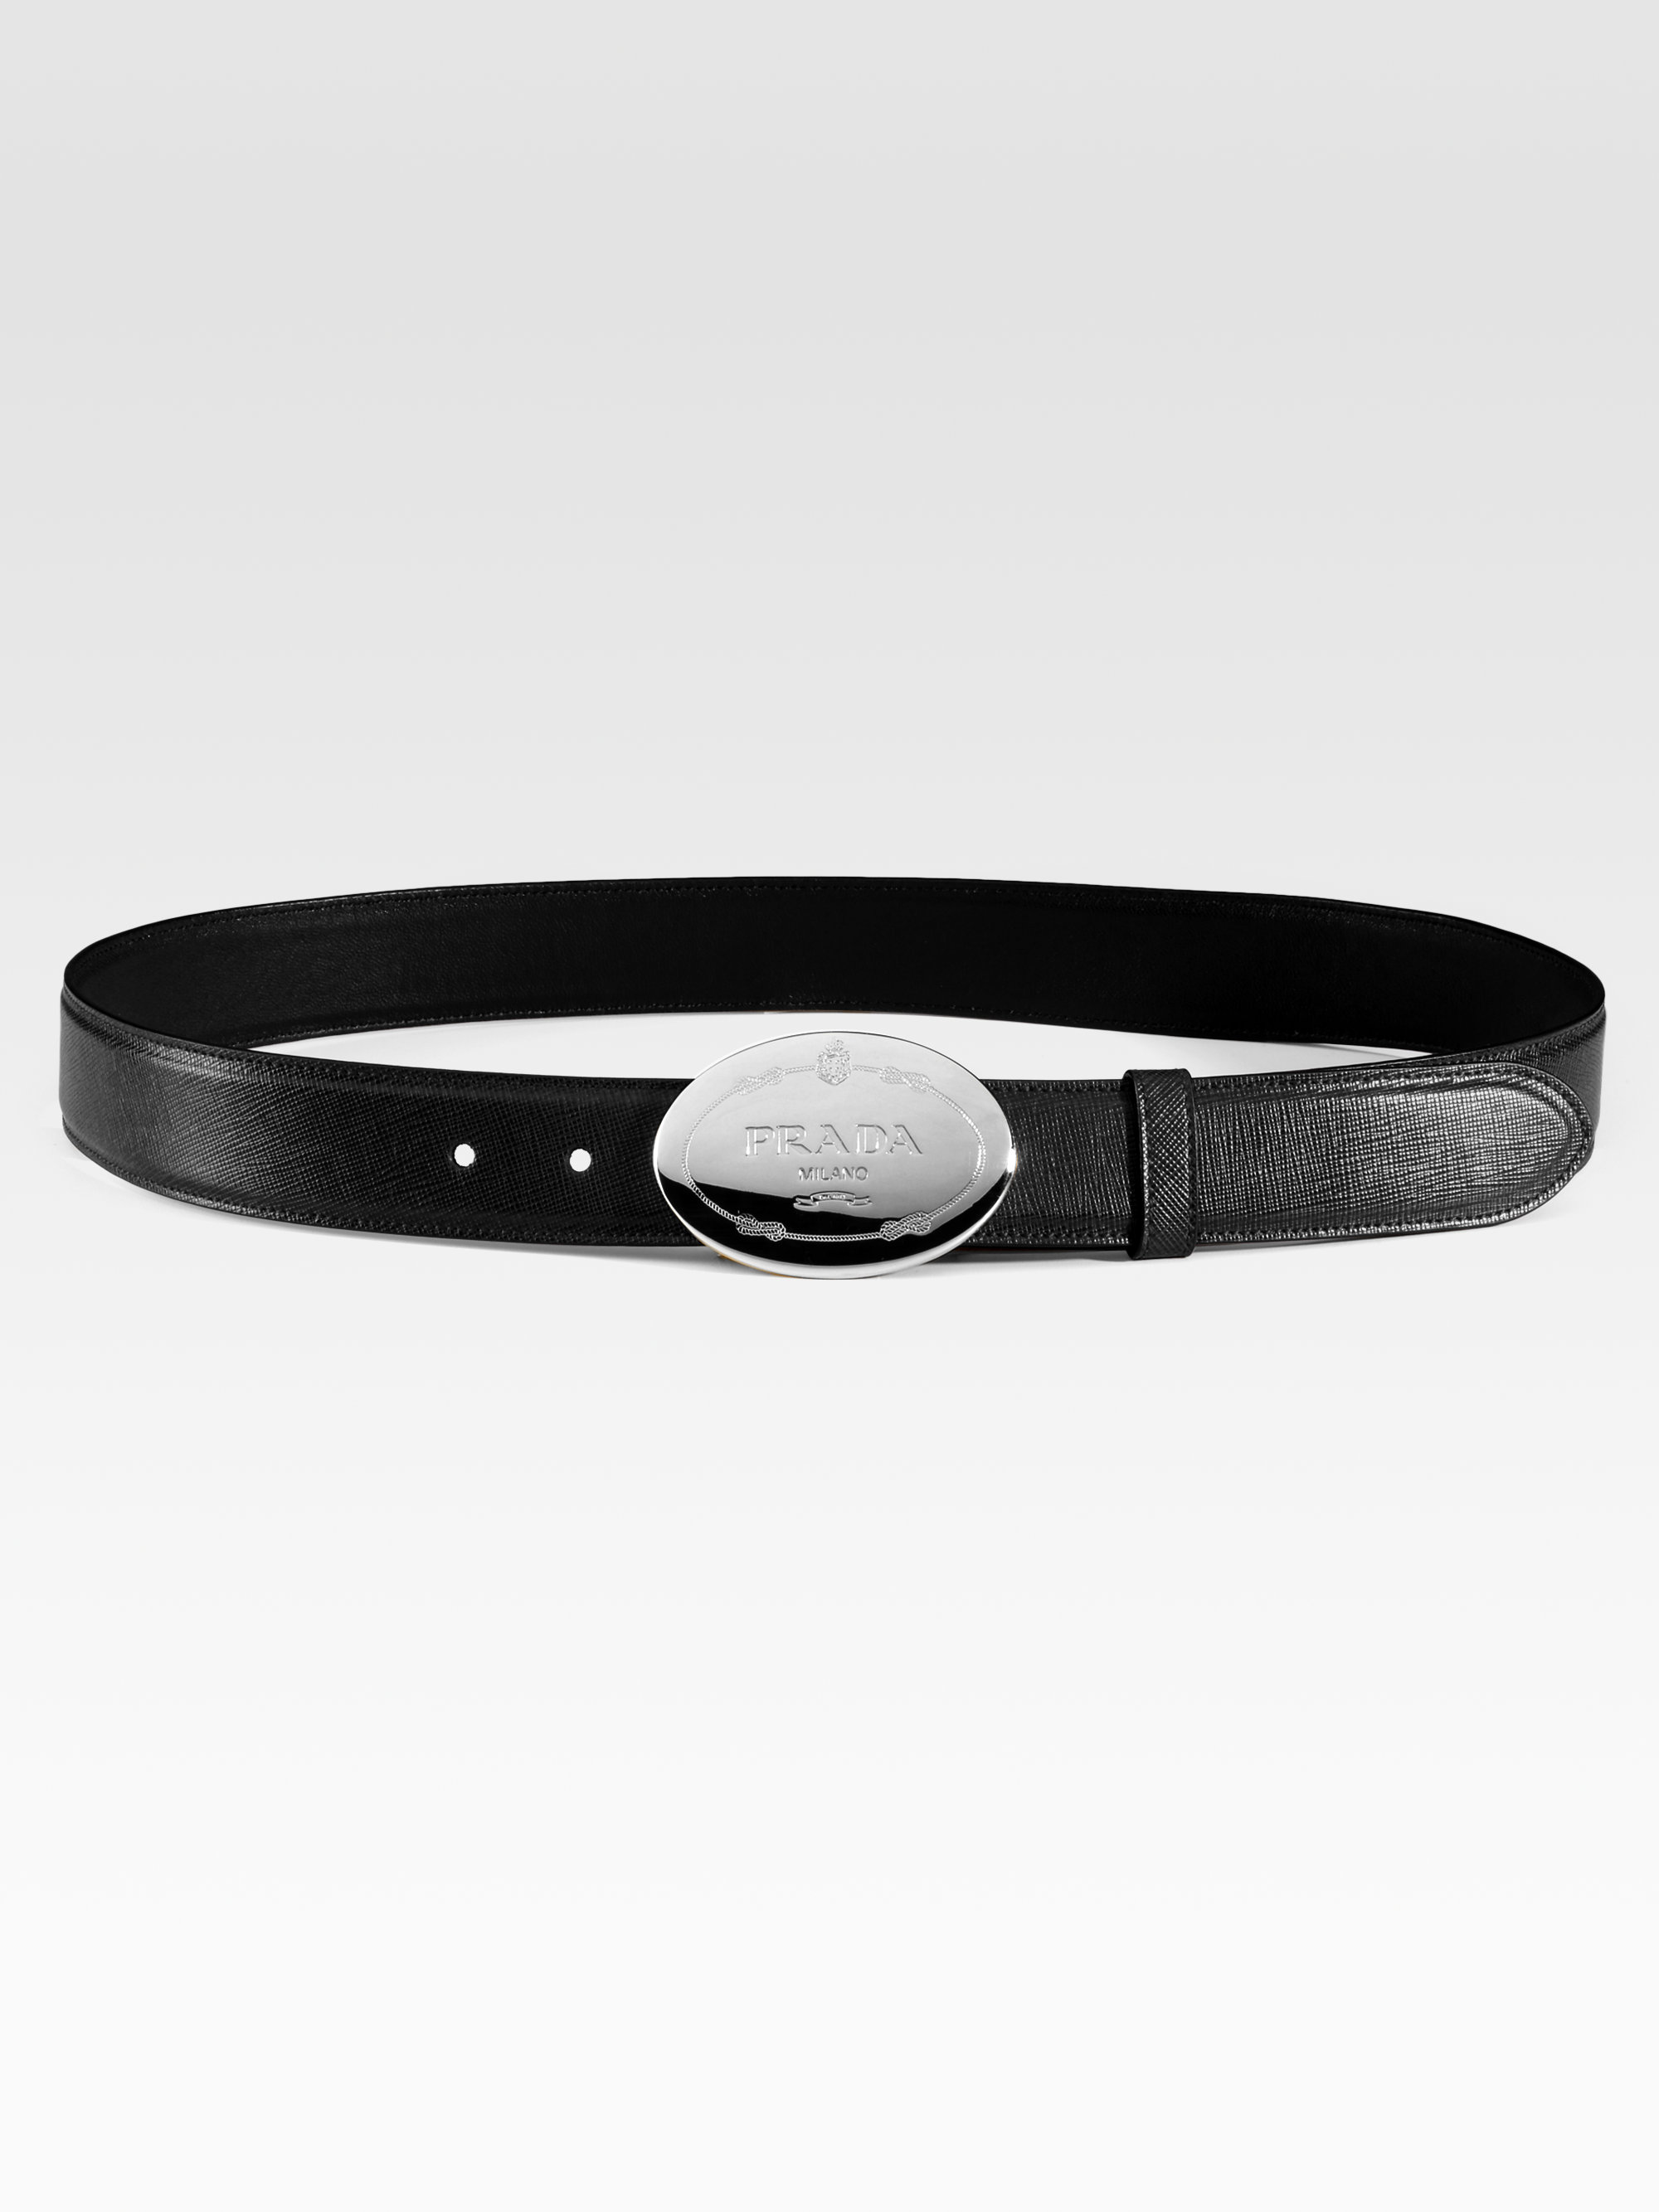 Prada Saffiano Engraved Belt in Black (silver) | Lyst